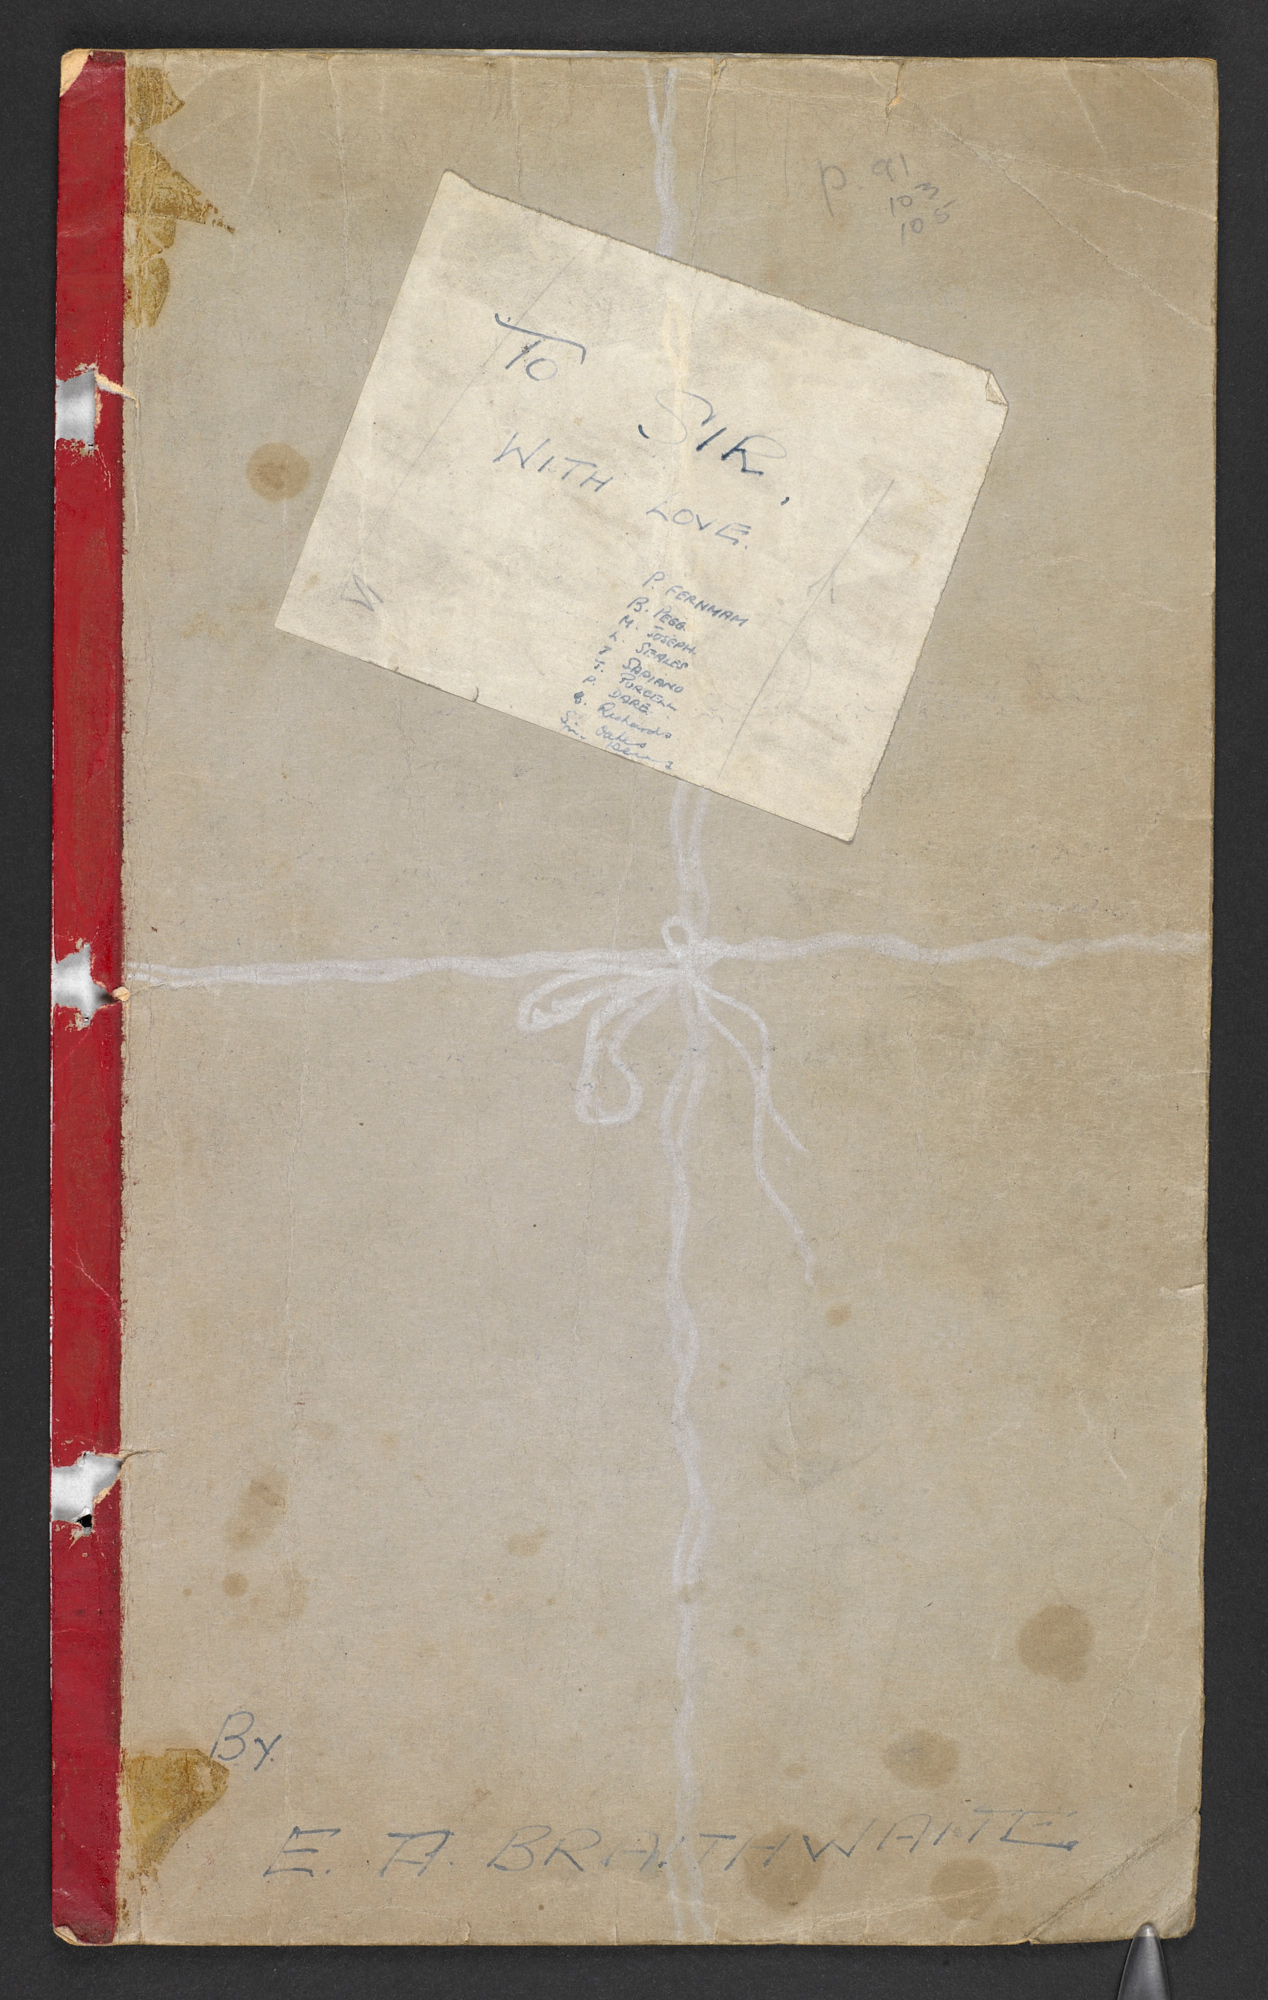 Cardboard front cover, featuring the title, author's name and white pencil drawn like a ribbon tied around a present, from a typescript draft of E R Braithwaite's To Sir, With Love